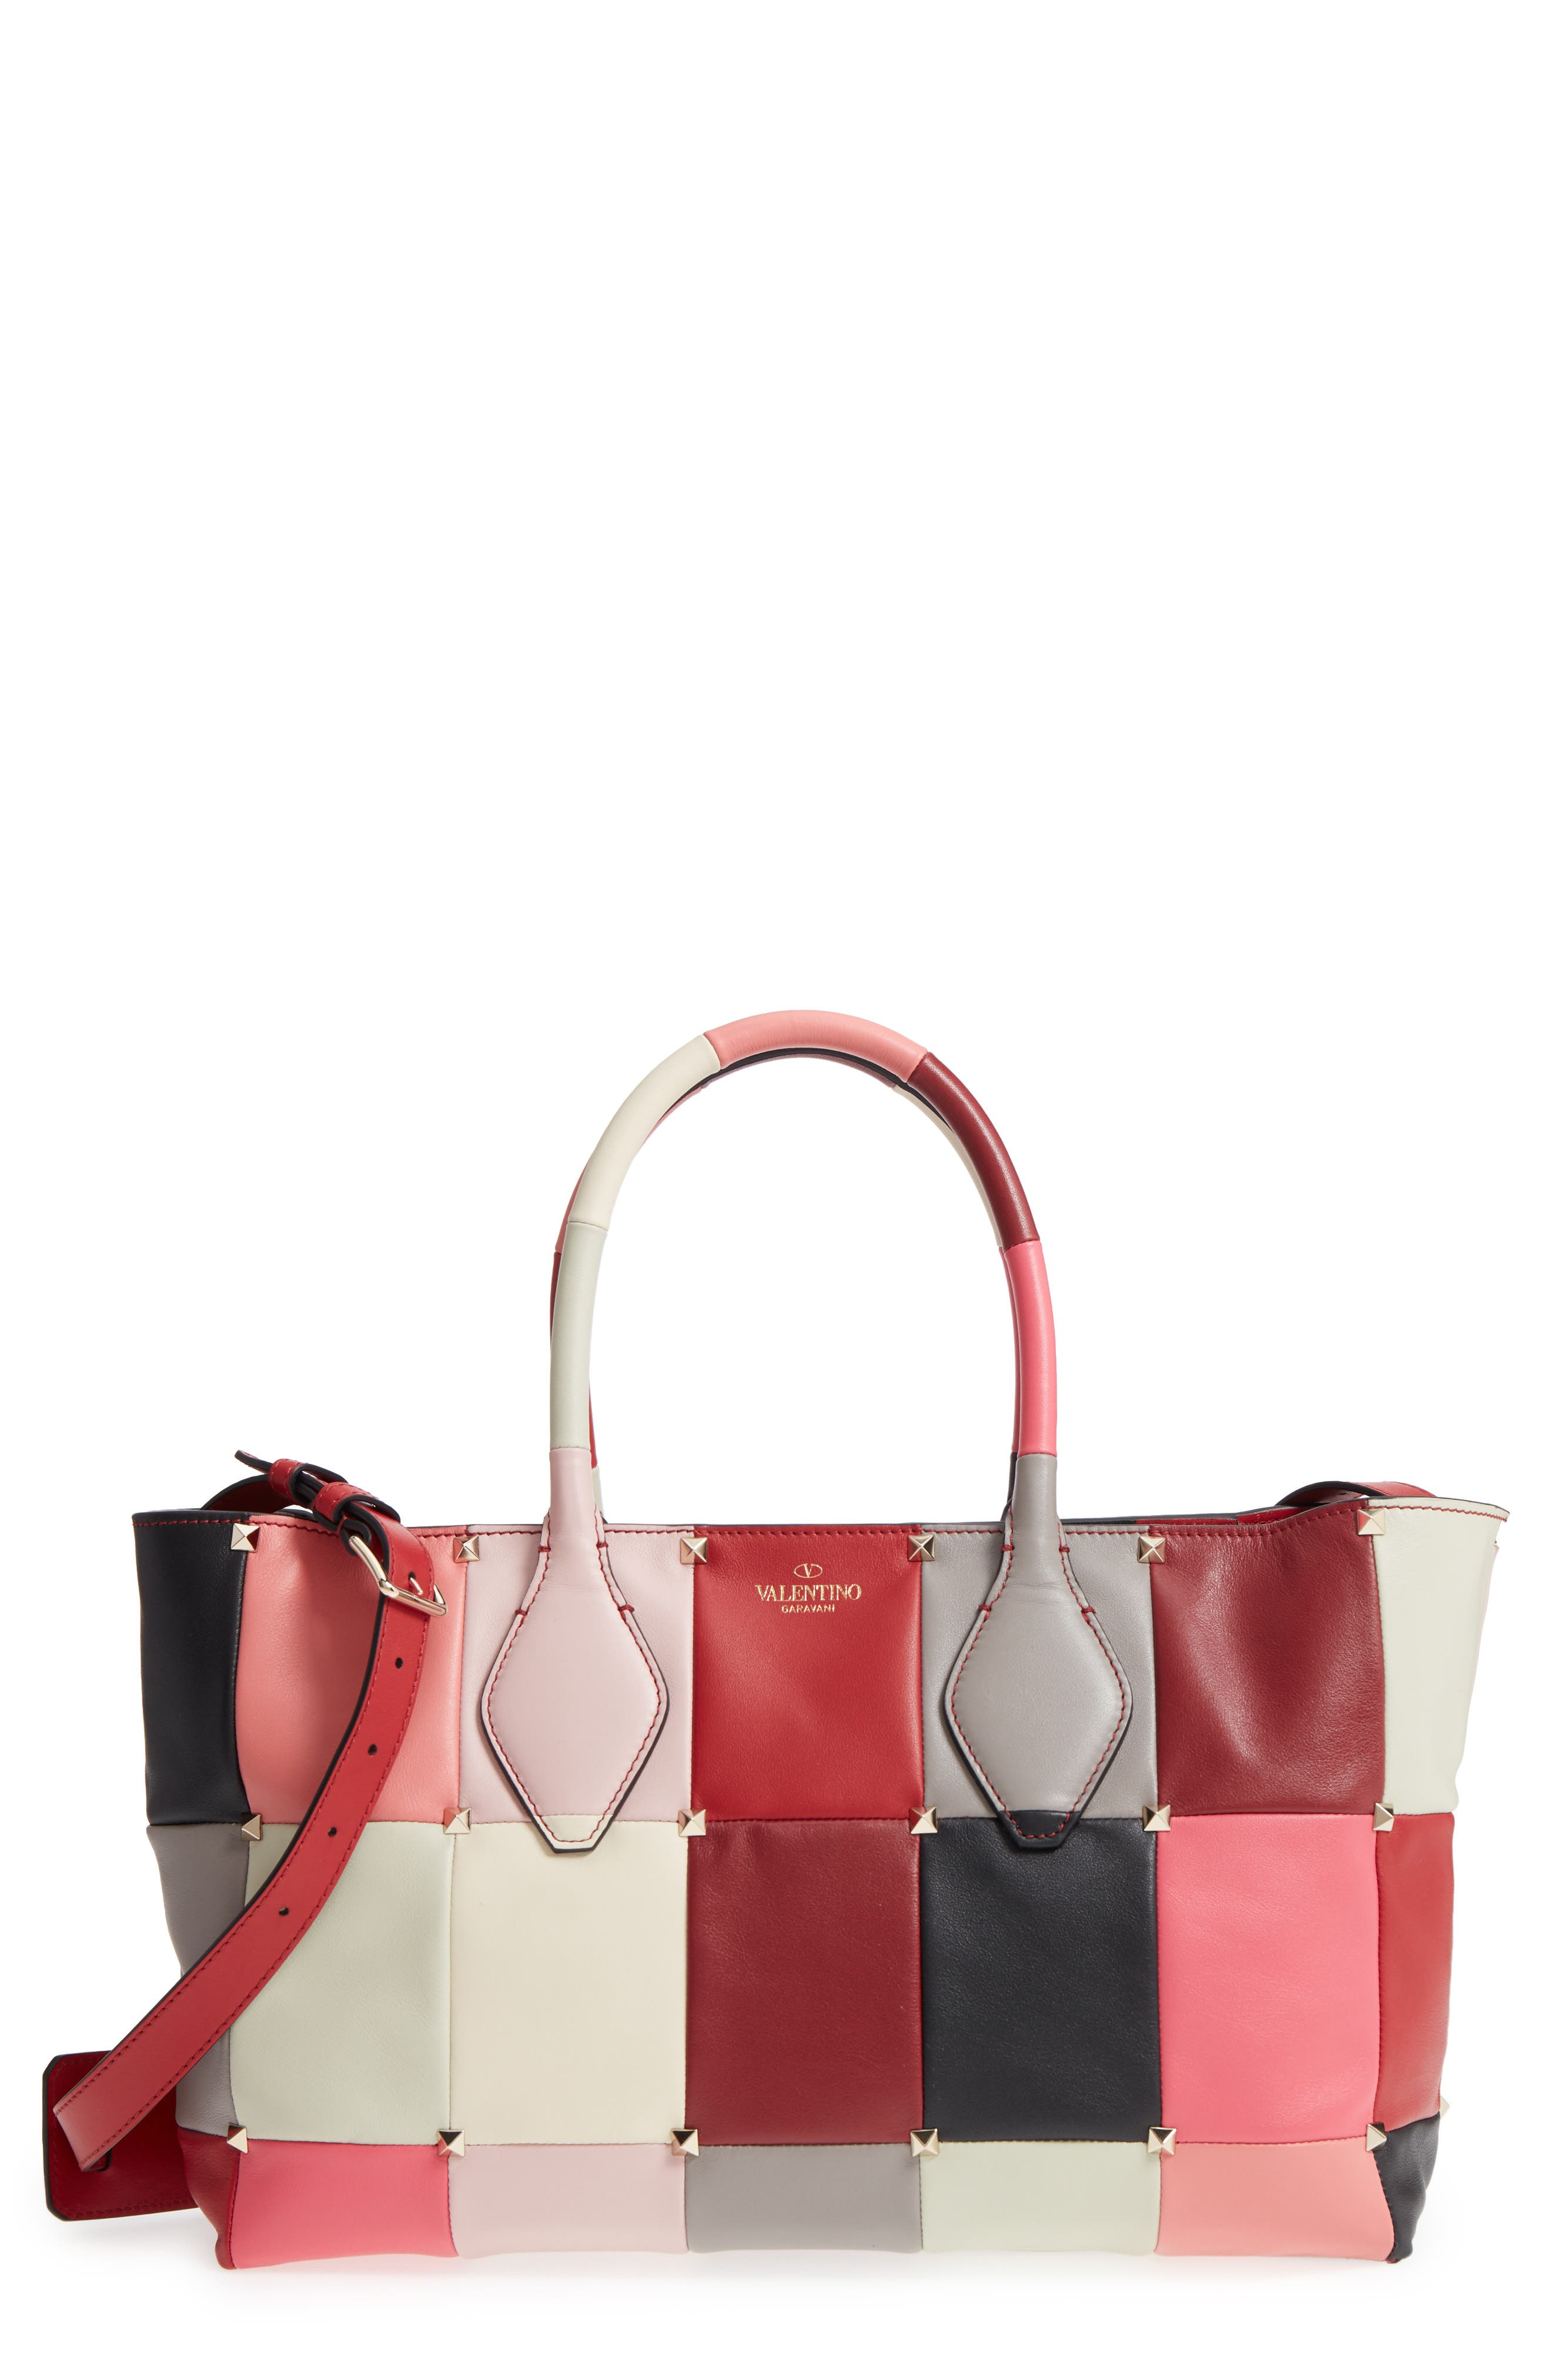 Puzzlestud Small Patchwork Leather Tote,                             Main thumbnail 1, color,                             Rose Multicolor